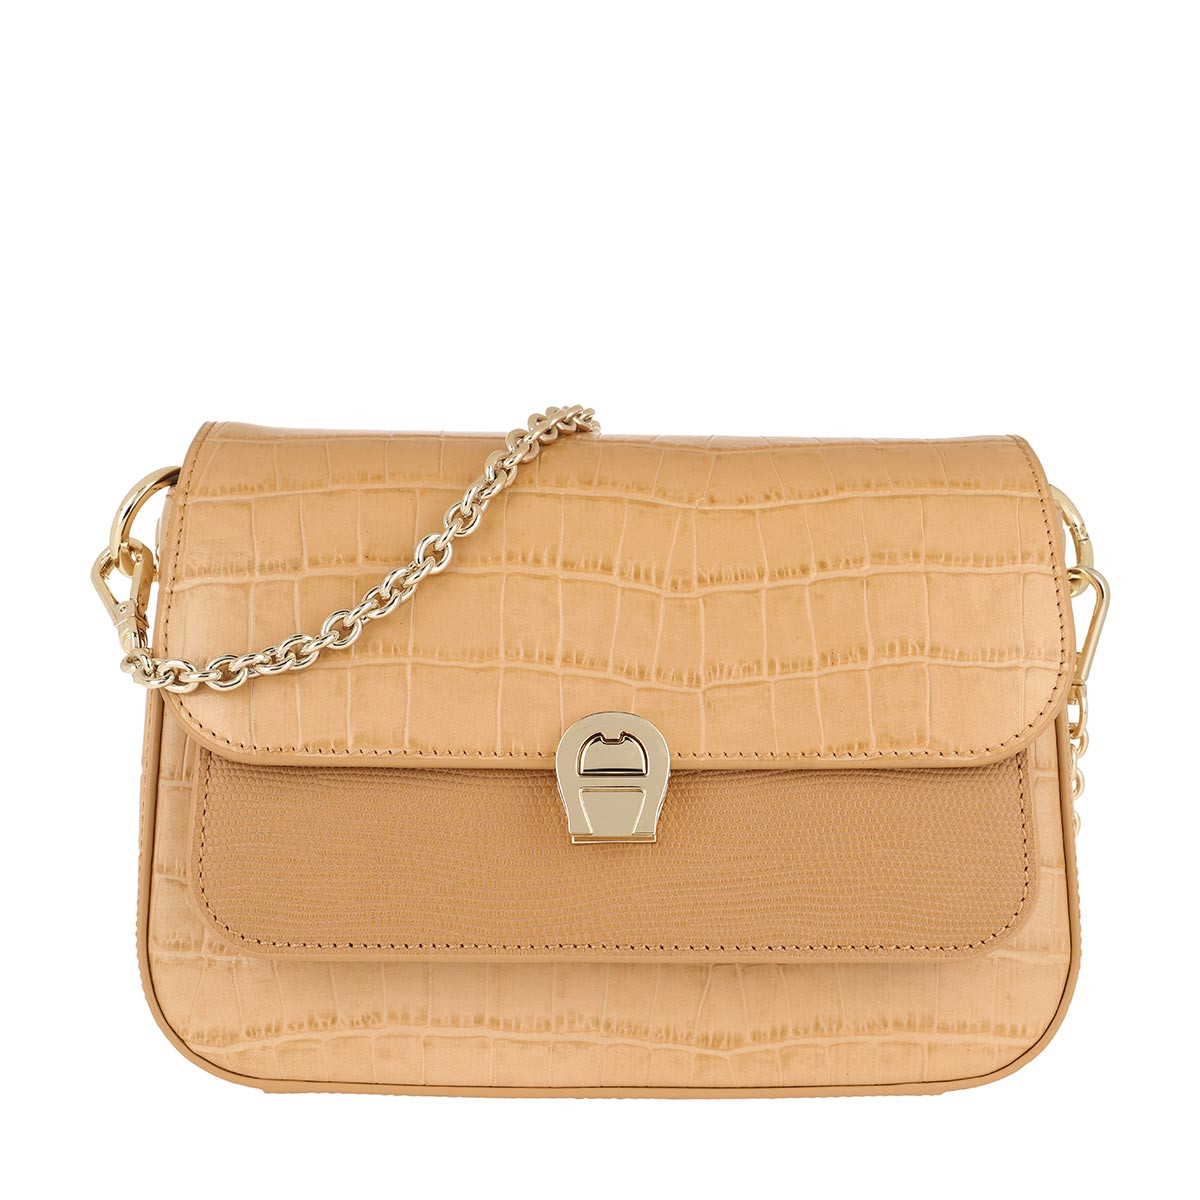 Aigner Umhängetasche - Crossbody Bag Genoveva Vacchetta Brown - in beige - für Damen